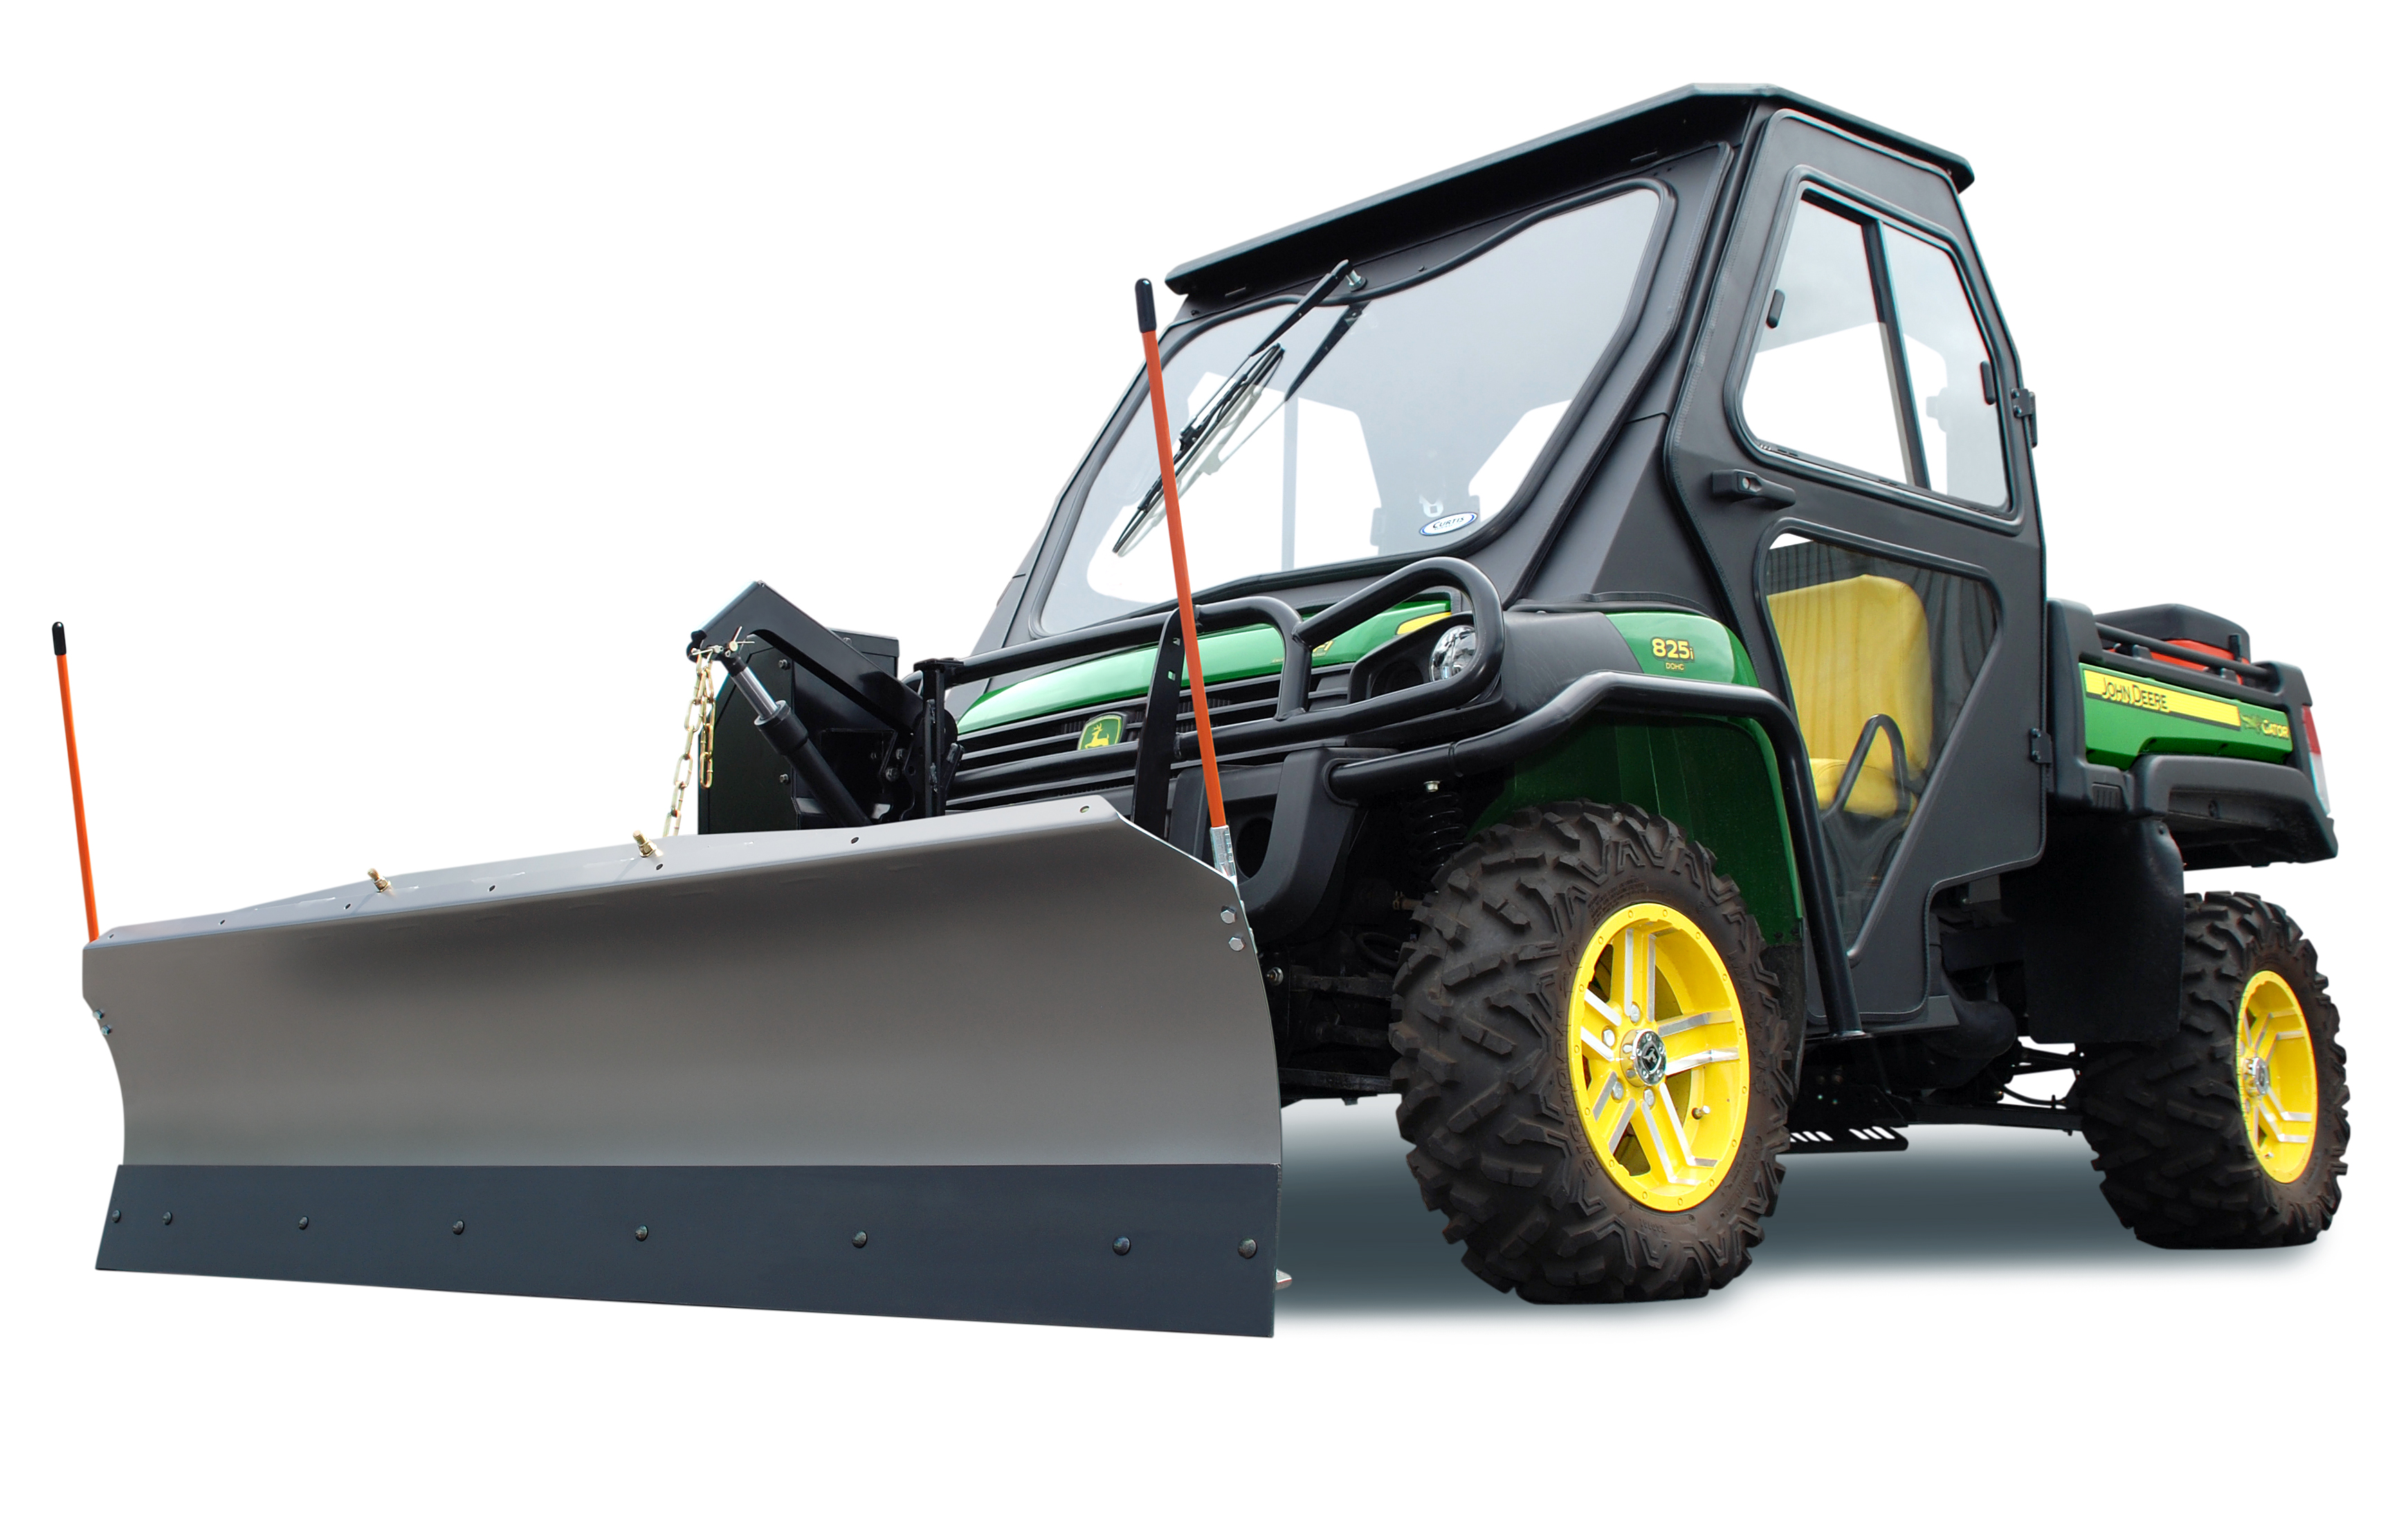 John Deere Gator Plow >> New Utility Vehicle Snow Plow